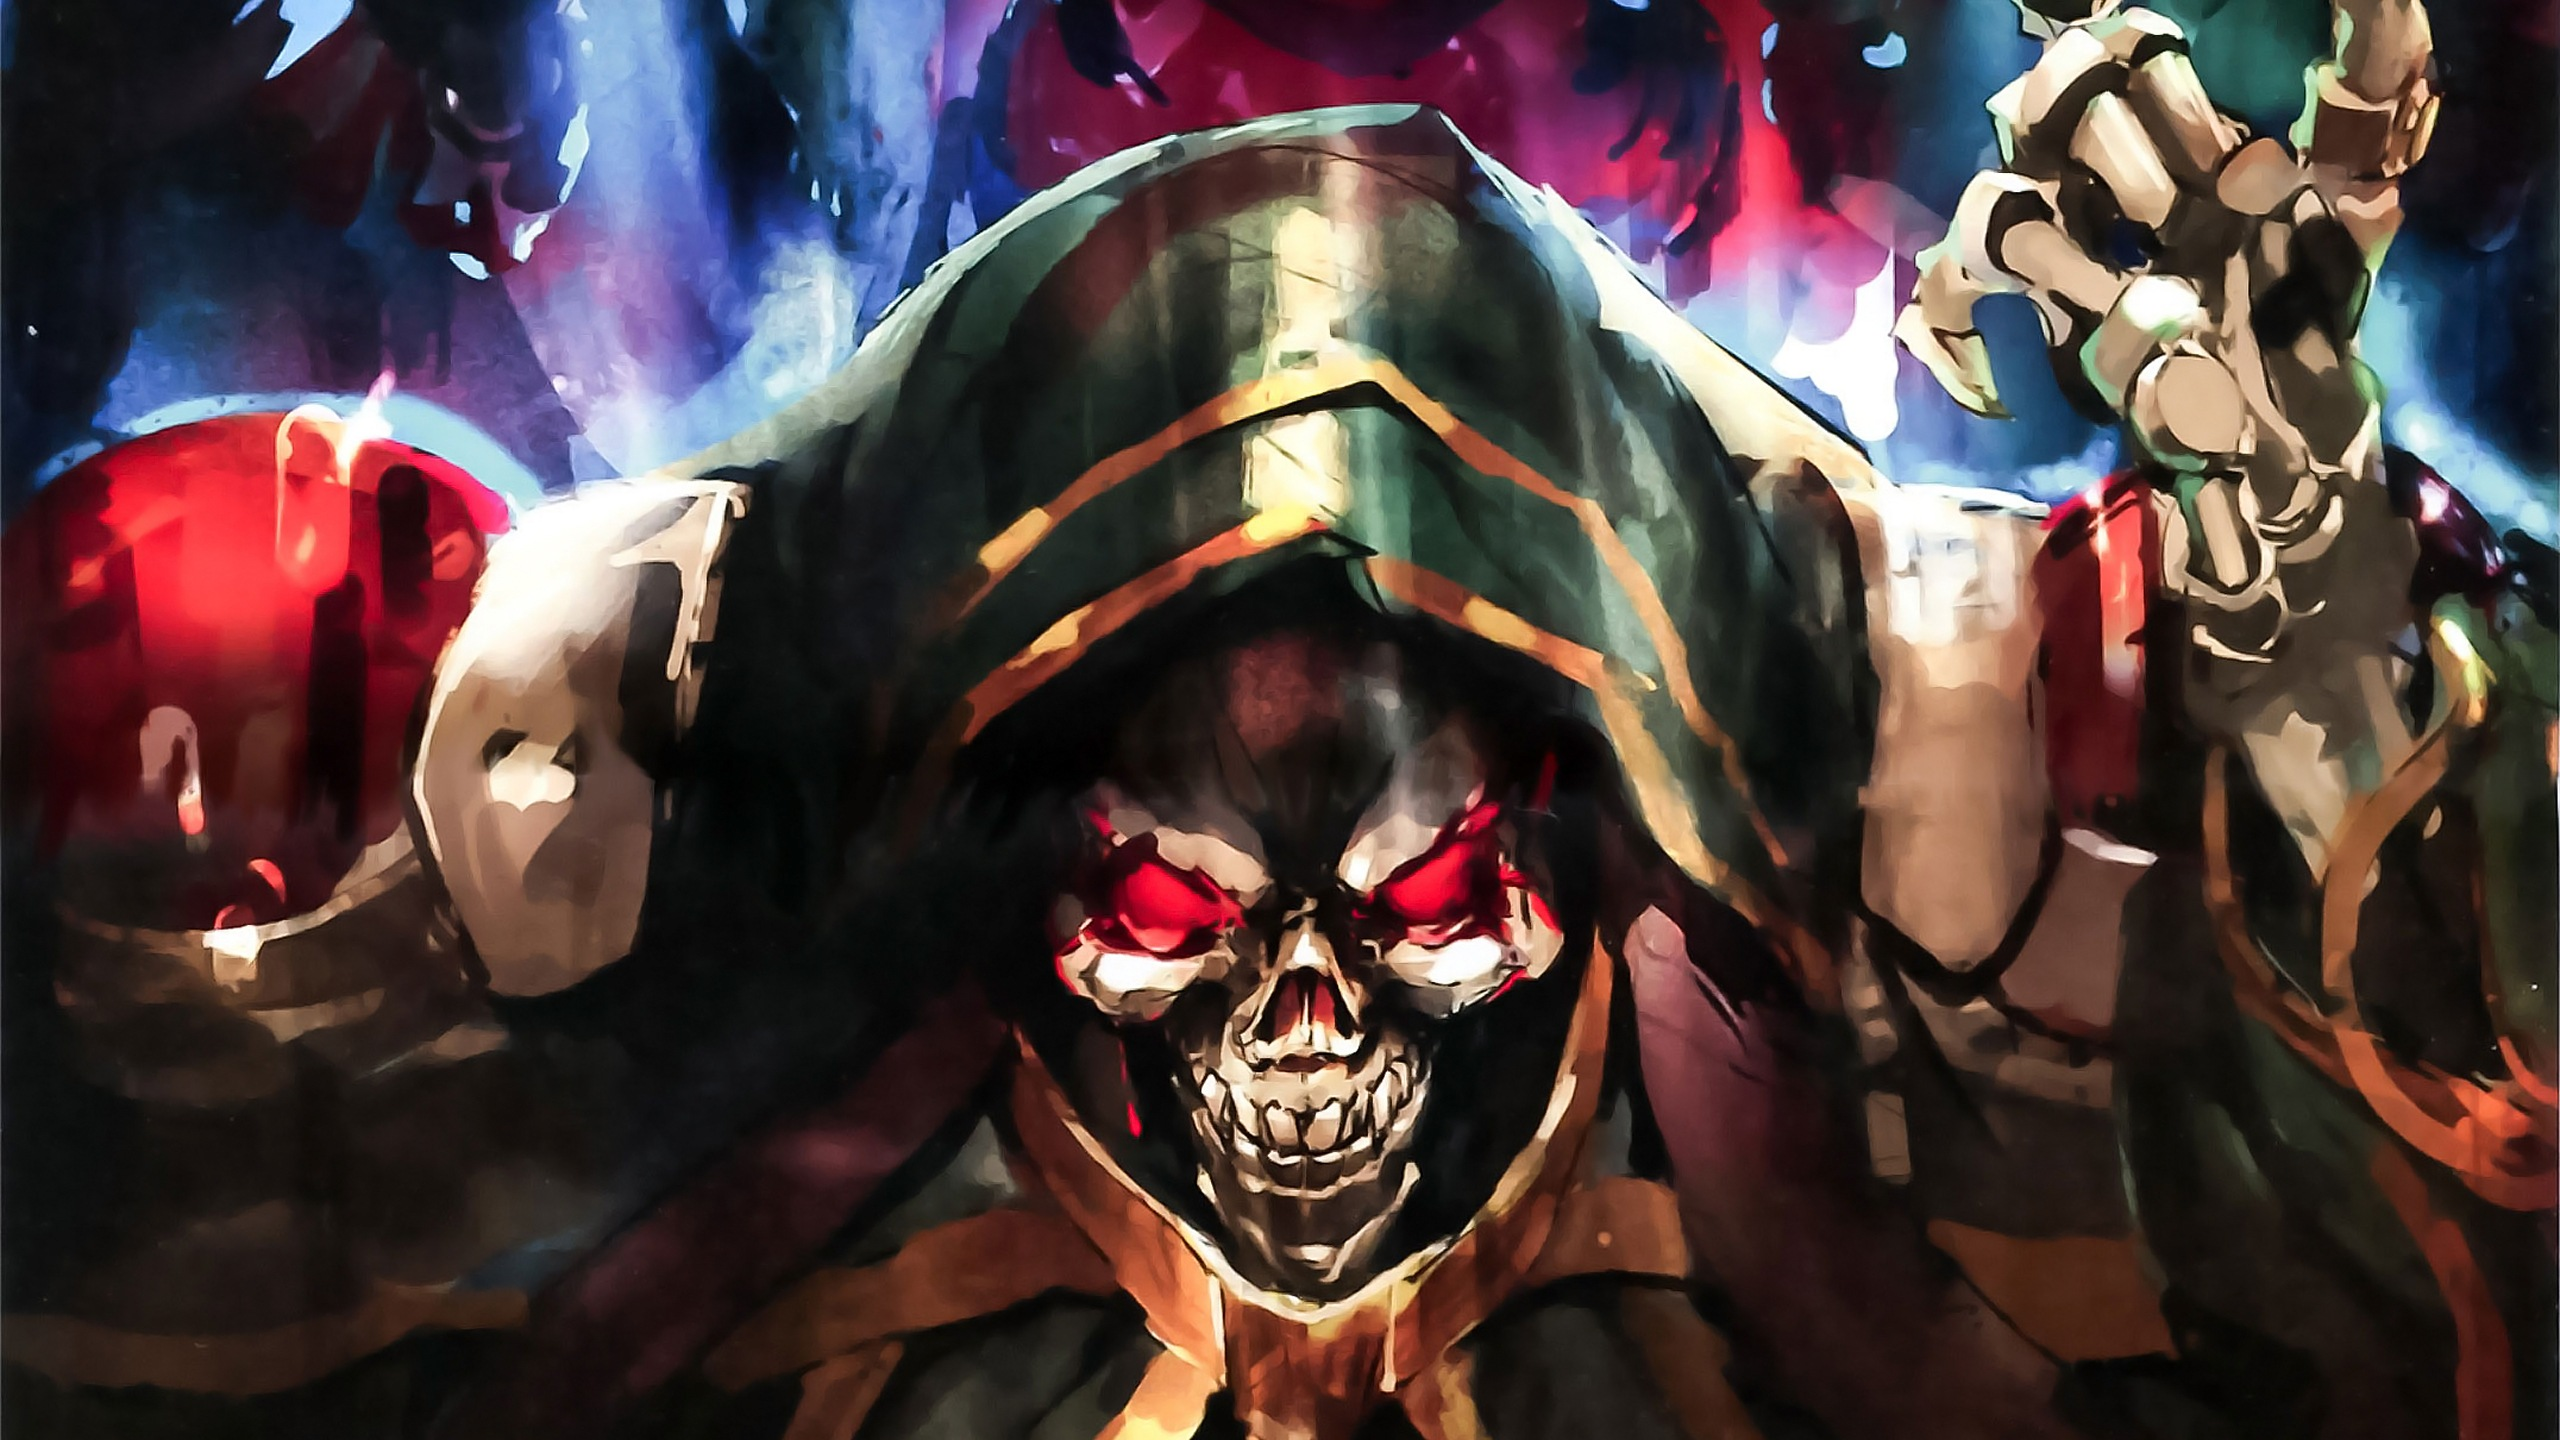 73 Ainz Ooal Gown Hd Wallpapers Background Images Wallpaper Abyss